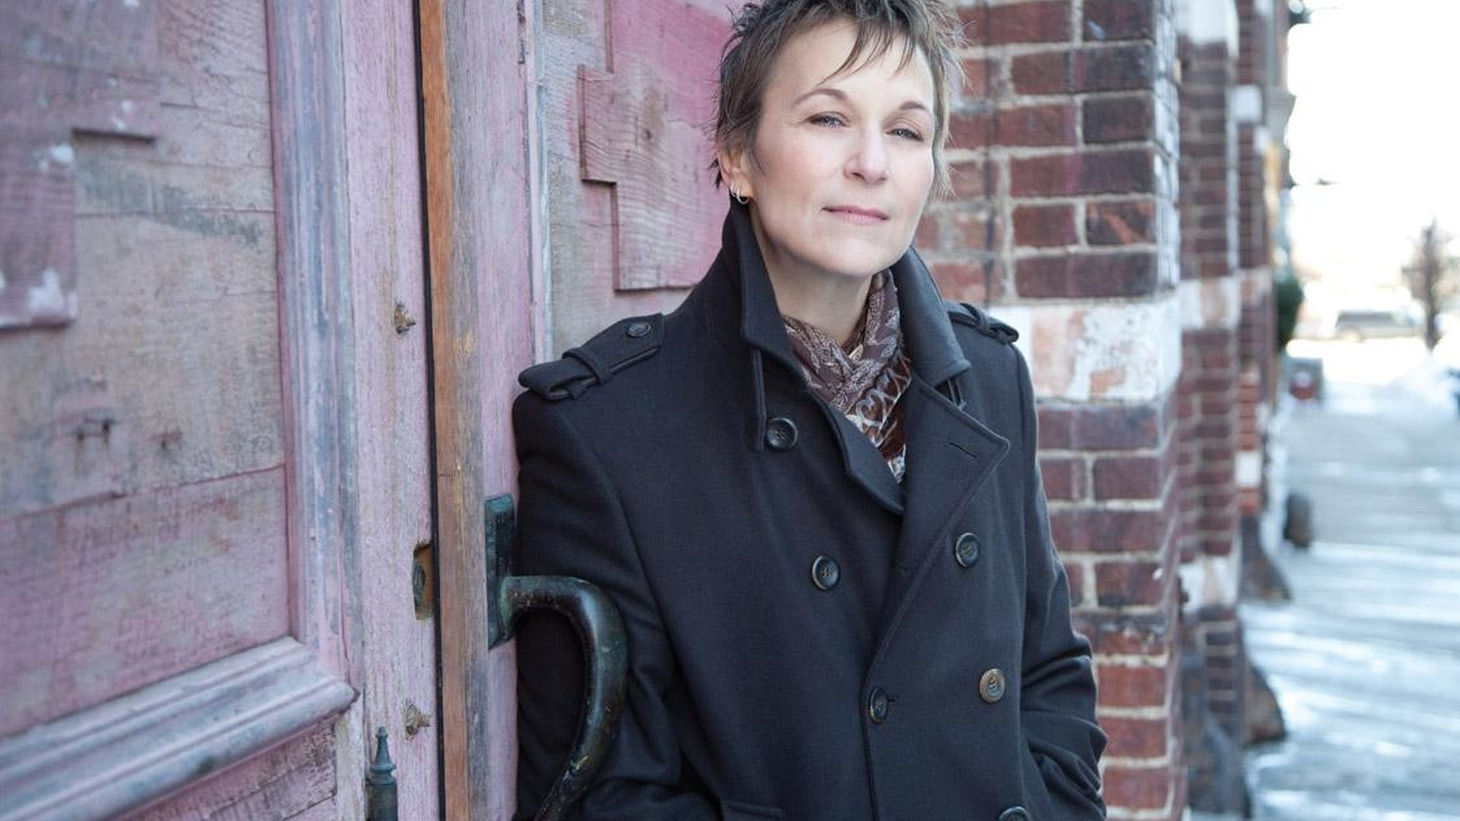 """Mary Gauthier's work can be described as """"country noir."""" Her autobiographical songs turn hardships into powerful life lessons. Gauthier's next release, The Foundling, is produced by Cowboy Junkies' Michael Timmons. From that disc, we have Today's Top Tune """"Sideshow."""""""